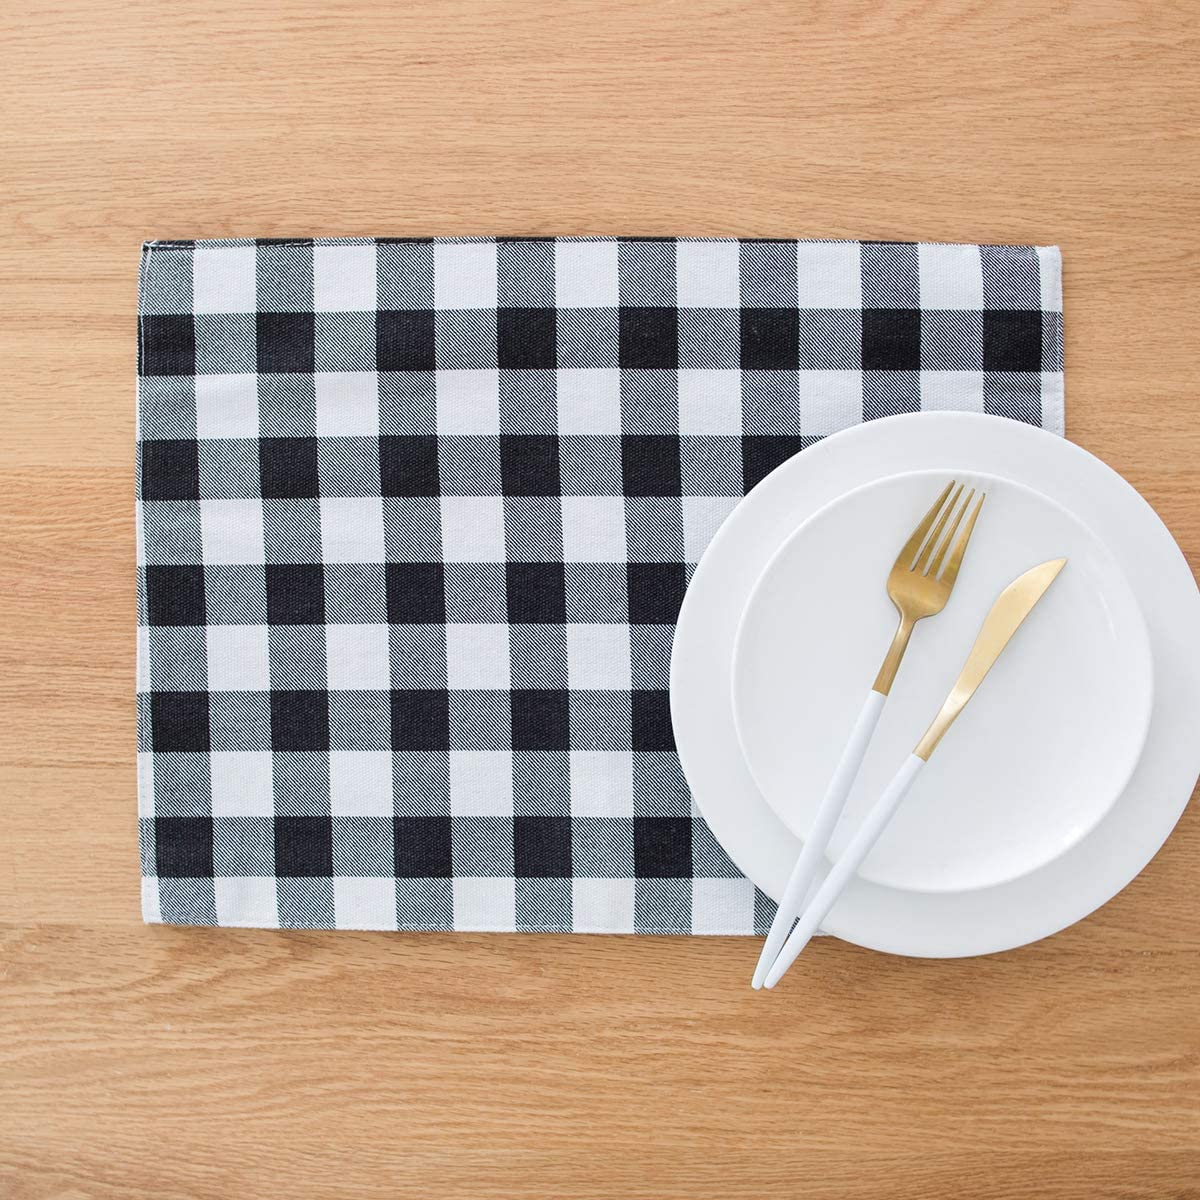 famibay Buffalo Plaid Place Mats, Black and White Placemats Set of 4 Farmhouse Placemats Cotton Linen Table Mats for Kitchen